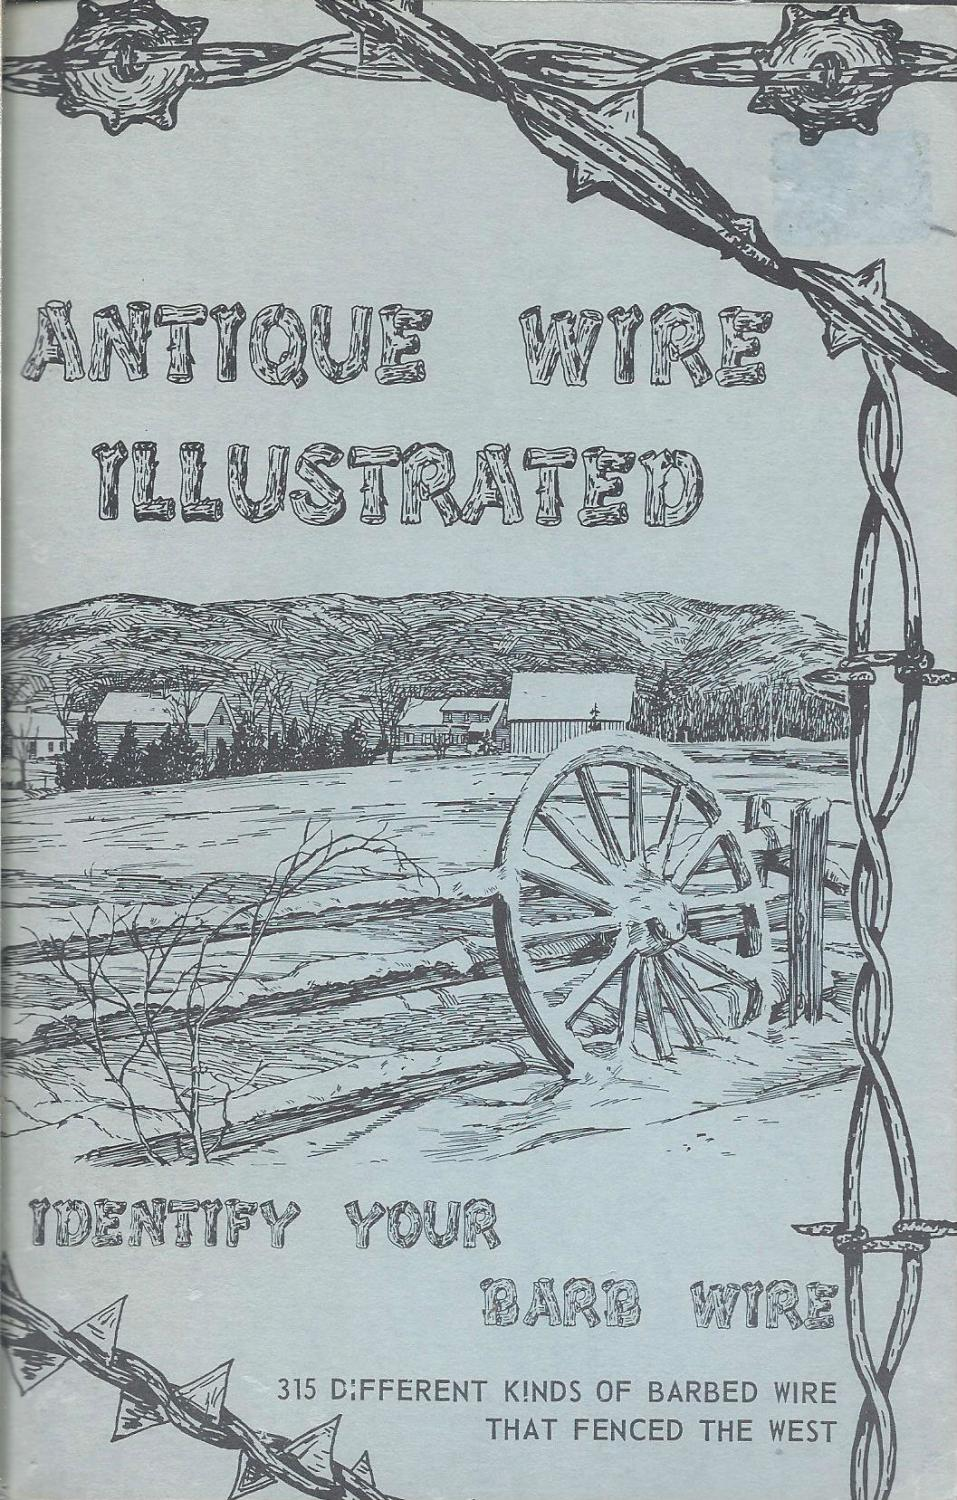 Antique Wire Illustrated Identify Your Barb Wire: Antique Wire Sales ...